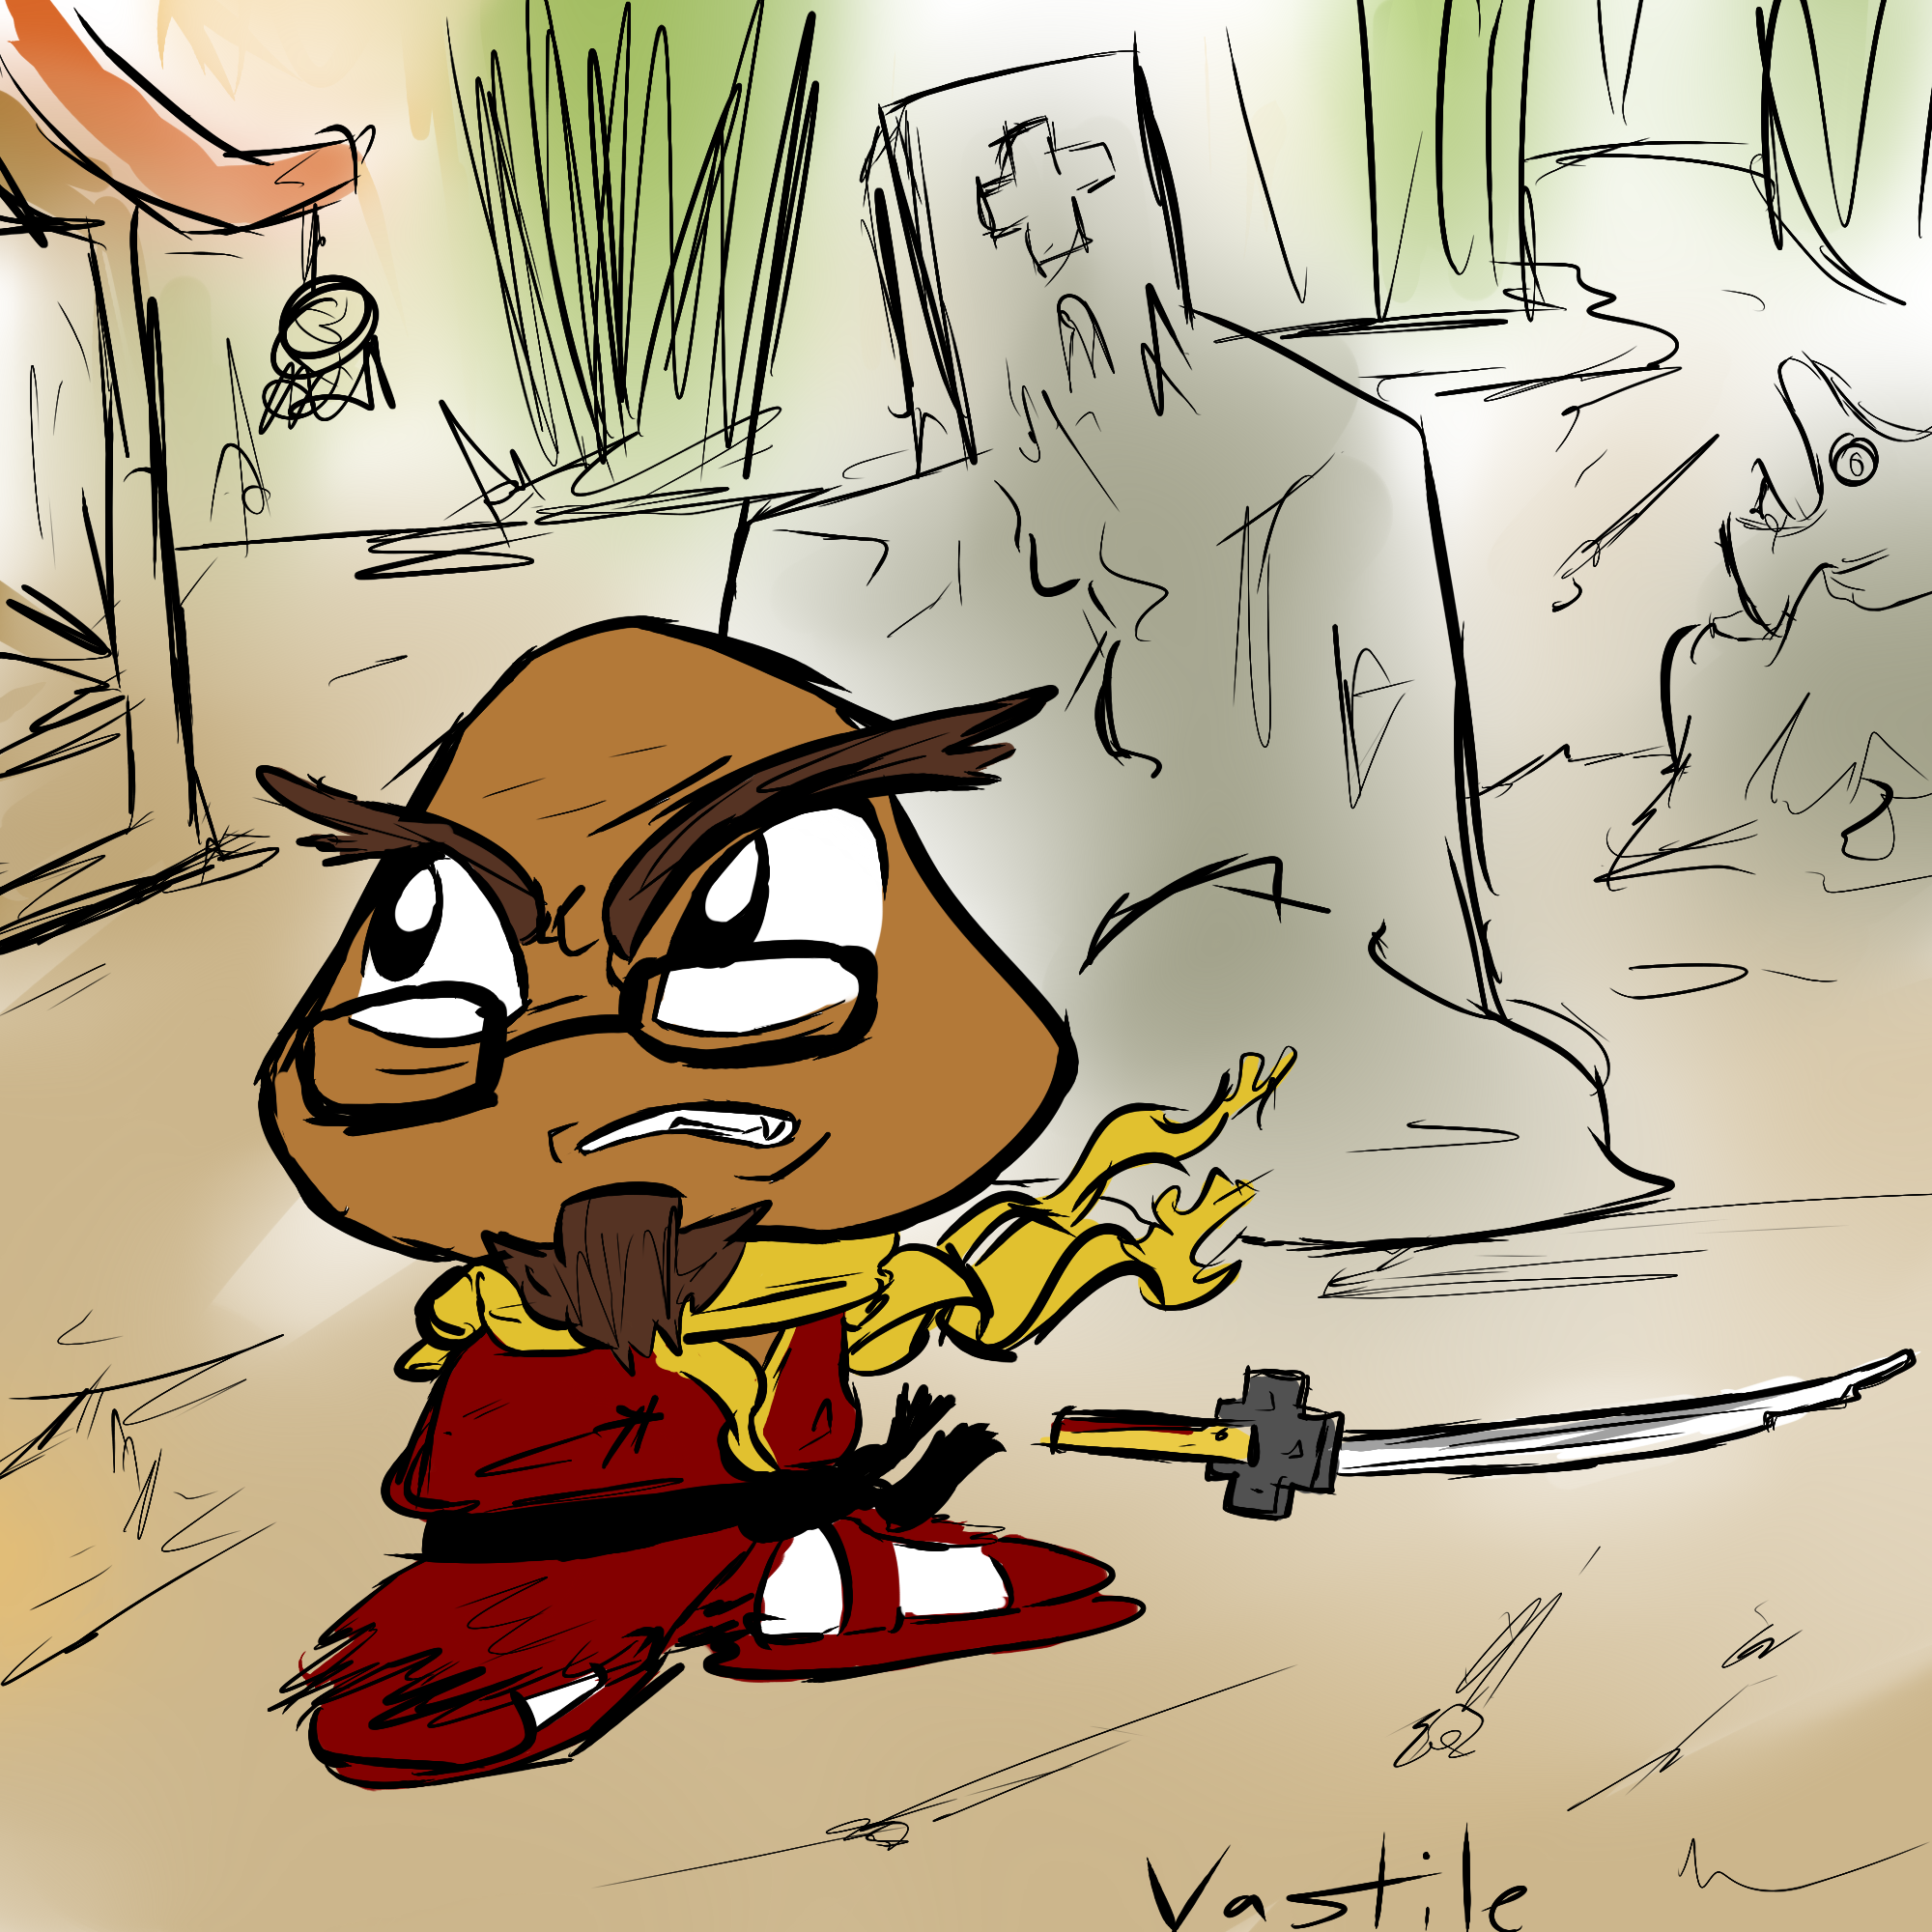 Gaijin Goombah and The Game Shrine by Vastile